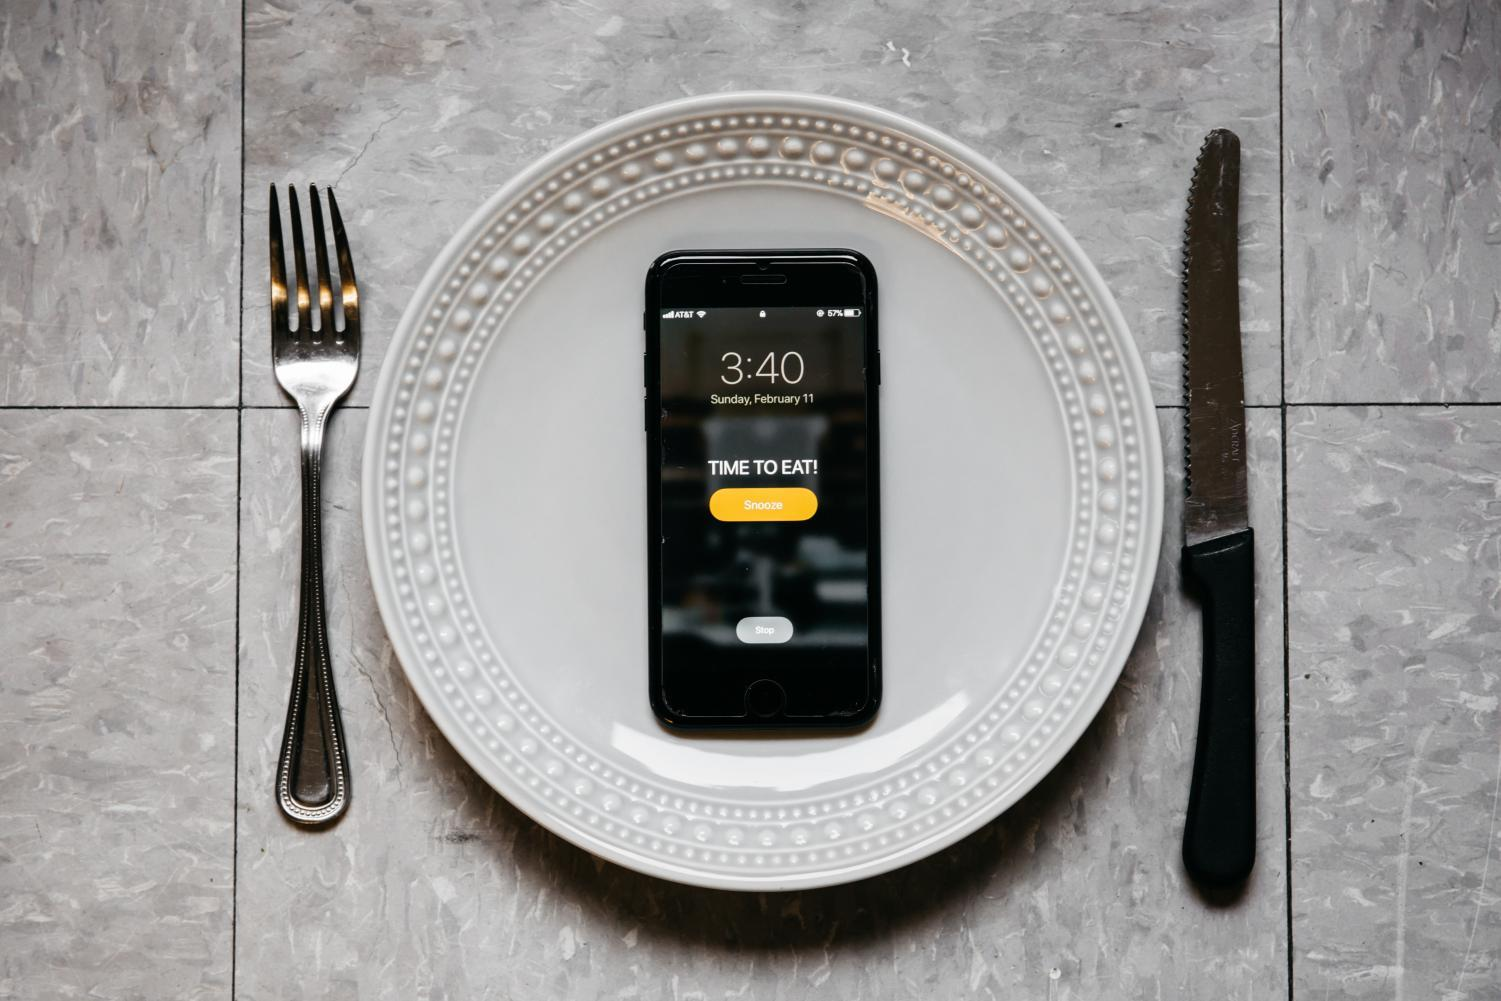 Intermittent fasting is an umbrella term for a diet that consists of periods of fasting and non-fasting. Gallatin junior Matthew Babcox has been utilizing intermittent fasting in his diet for a few months.